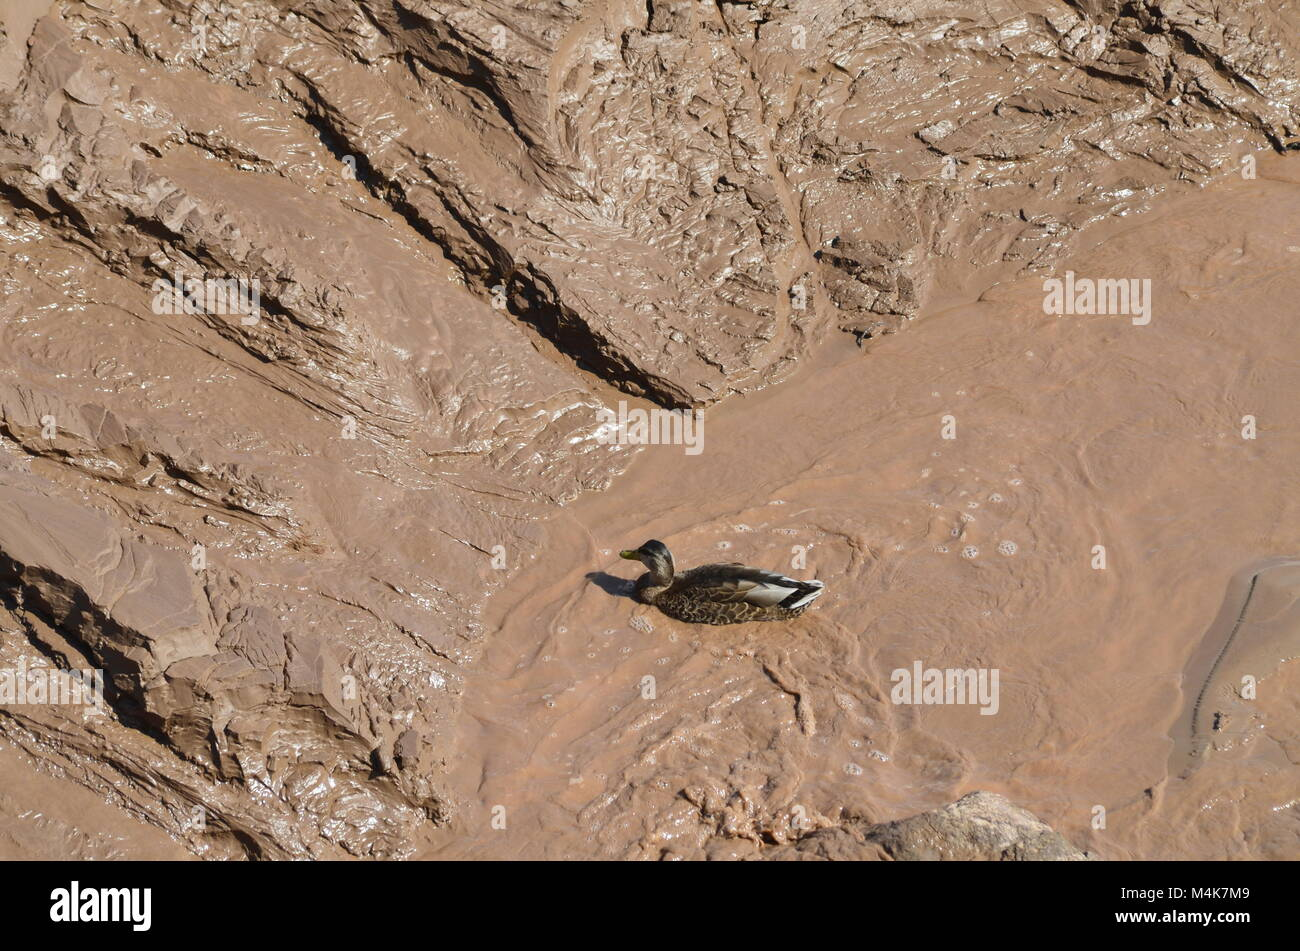 A confused duck, has found a place to swim but turns out it is just a muck hole with no clean water in site Stock Photo